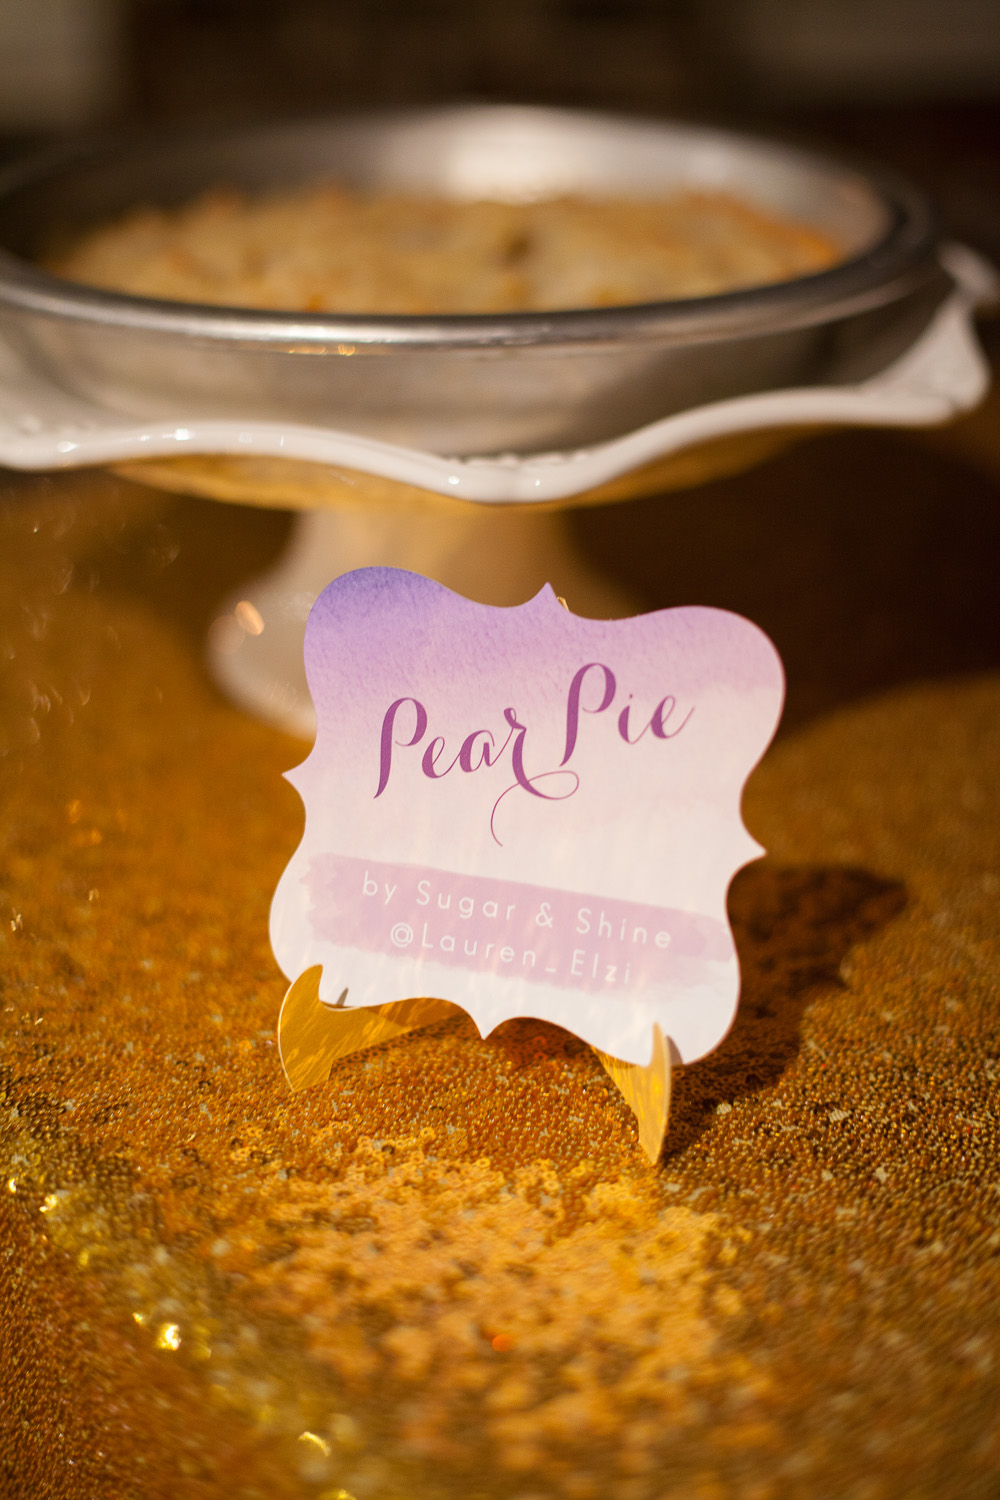 Pie Name Cards for Wedding Dessert Table